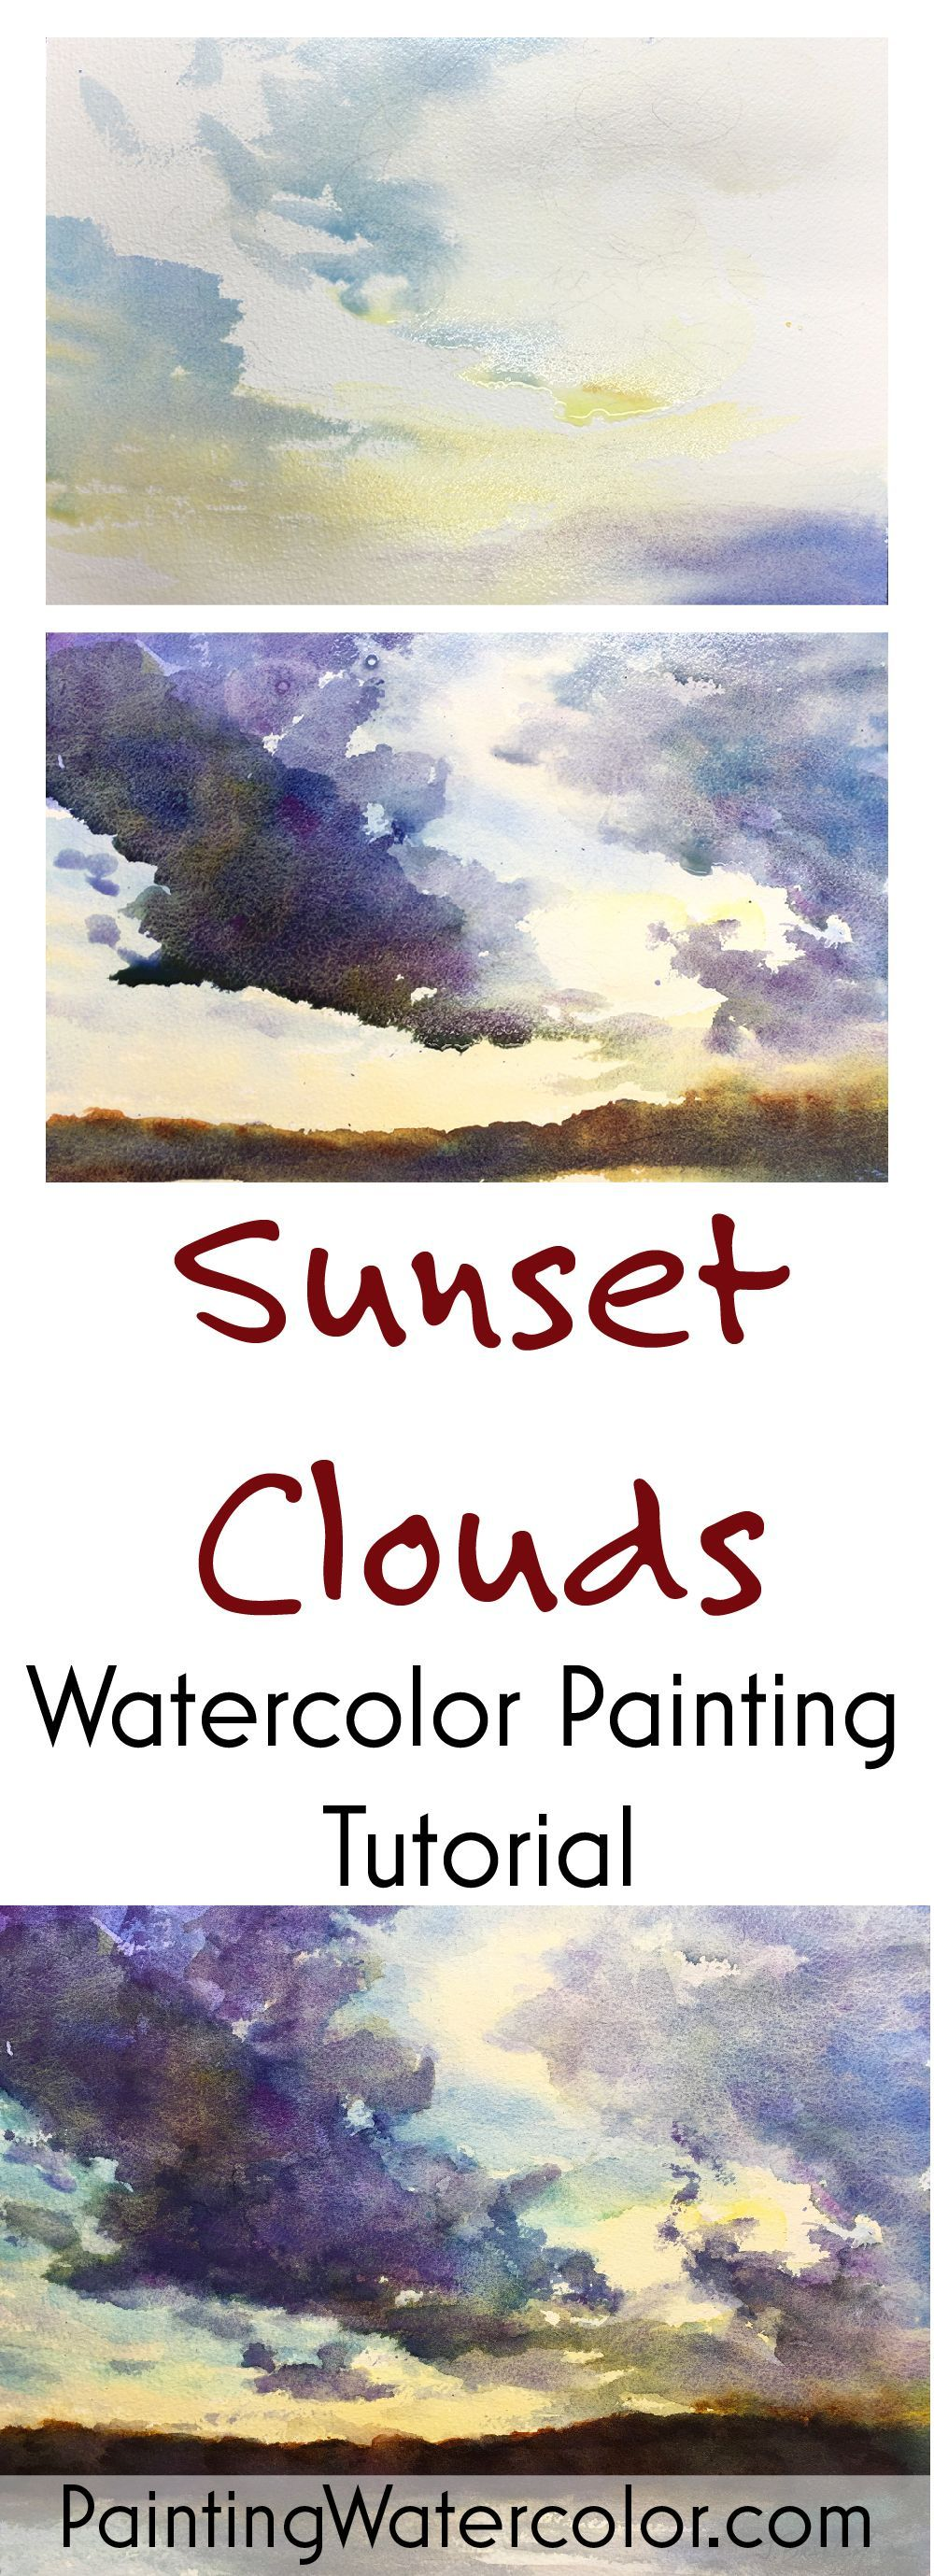 Sunset Clouds watercolor painting tutorial by Jennifer Branch #watercolorarts